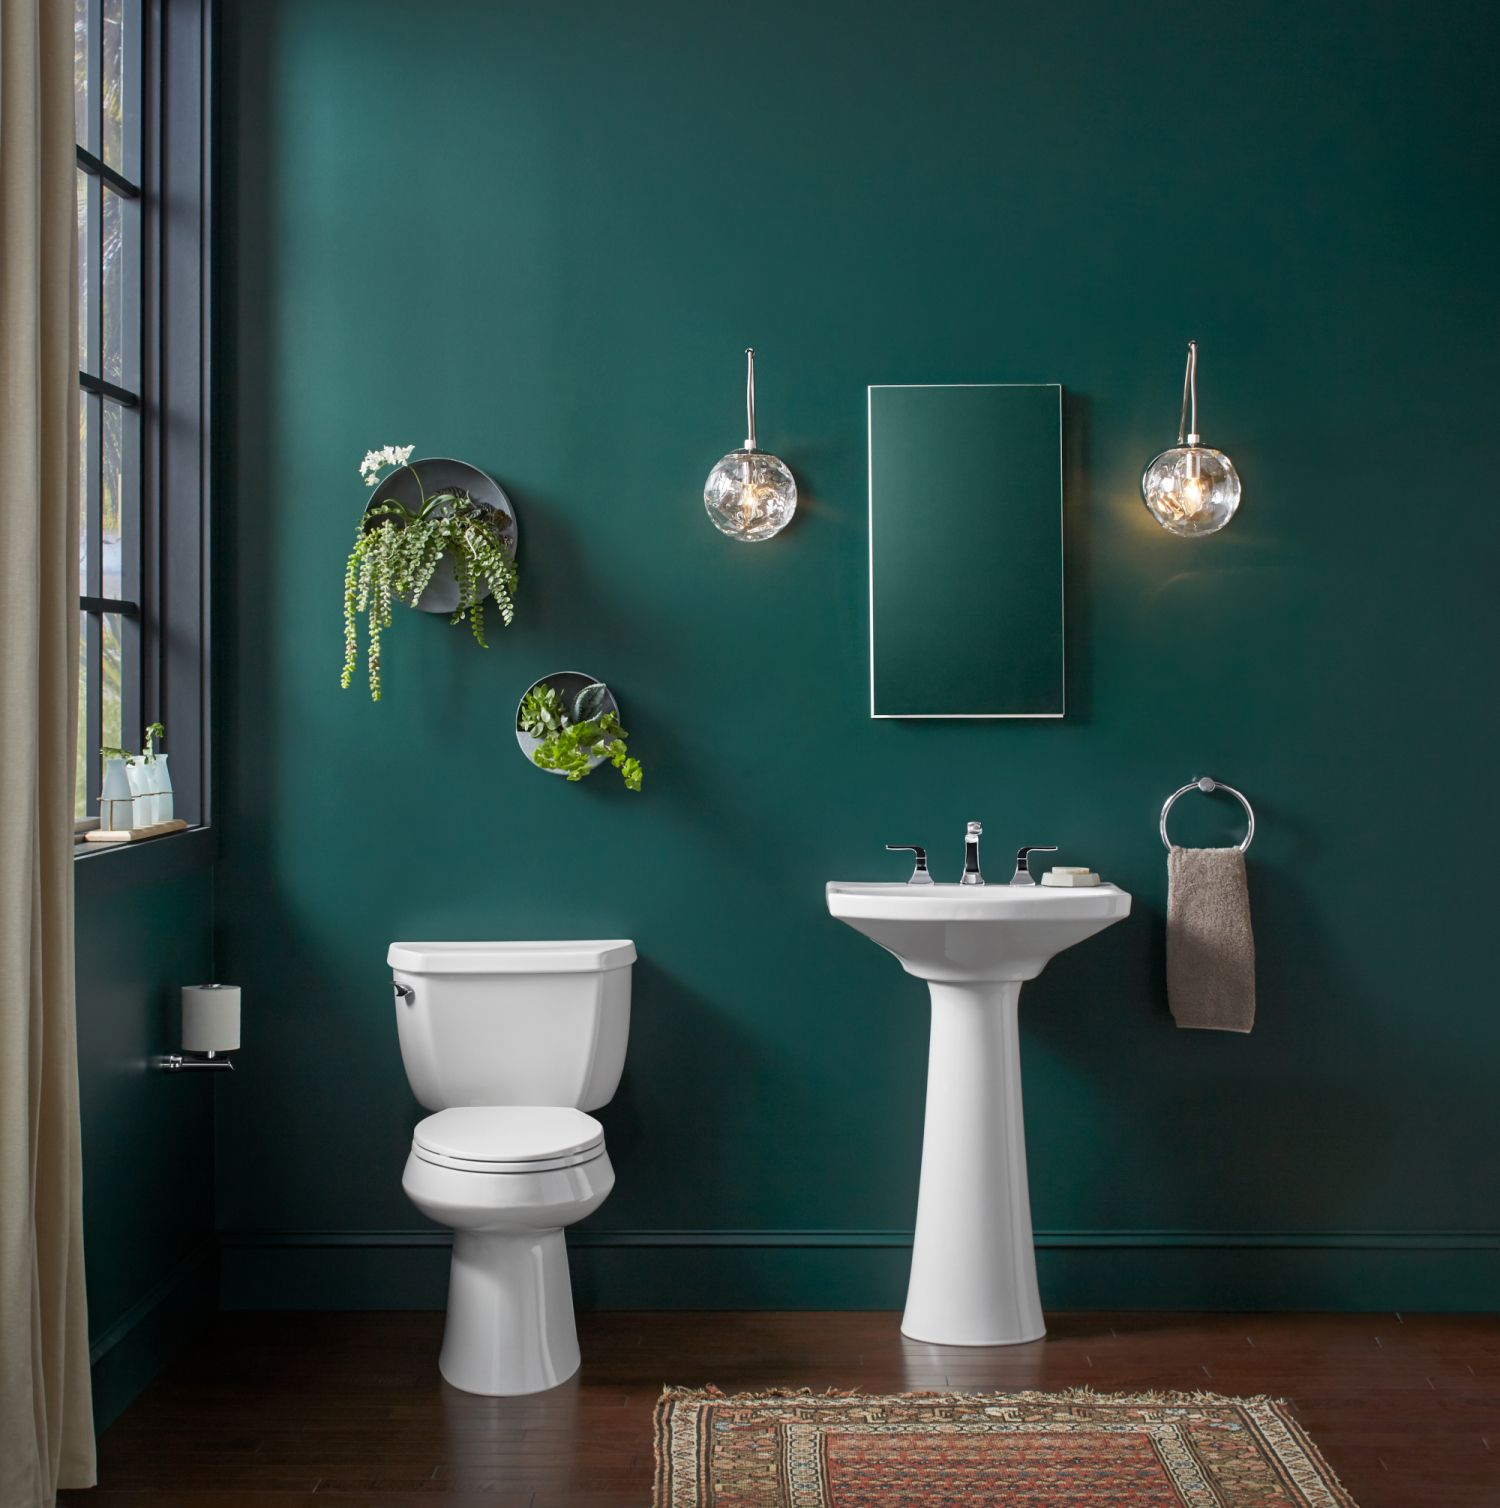 8 Beautiful Color Schemes For Bathroom Color Ideas Green Emerald Gold Grey In 2020 Bathroom Color Schemes Small Bathroom Colors Green Bathroom